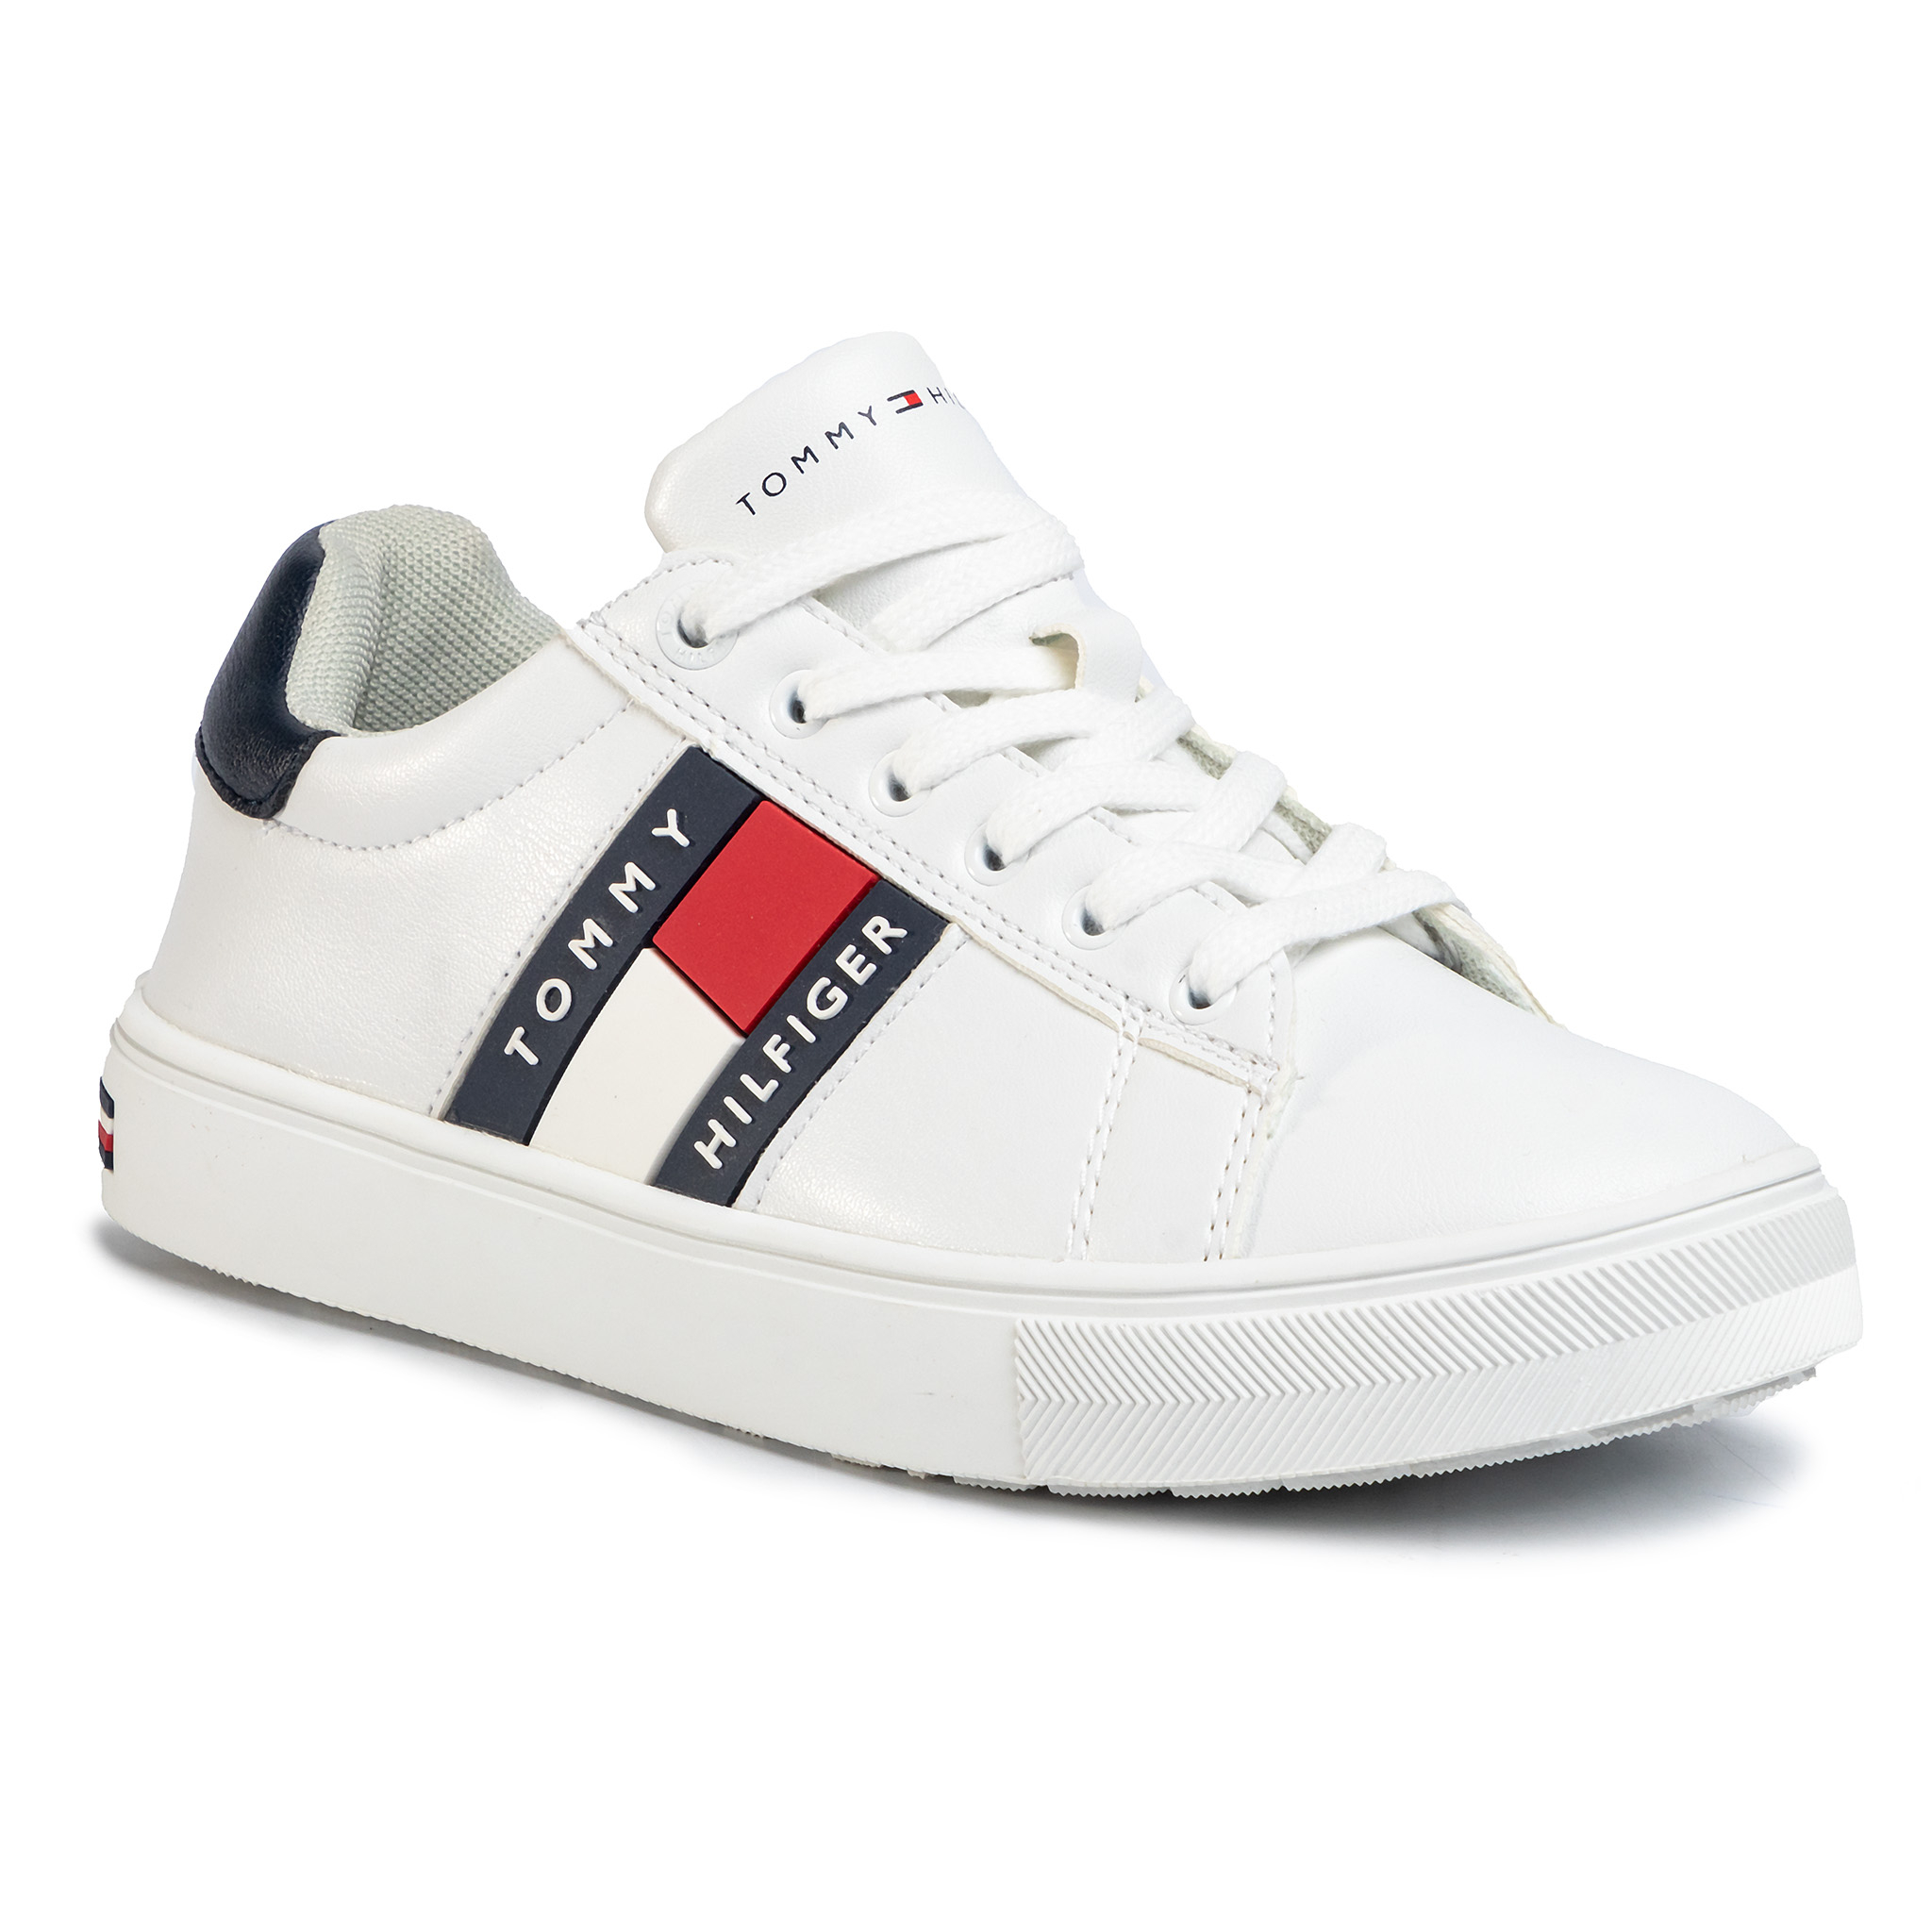 Sneakers TOMMY HILFIGER - Low Cut Lace-Up Sneaker T3B4-30718-0900 S White/Blue X336